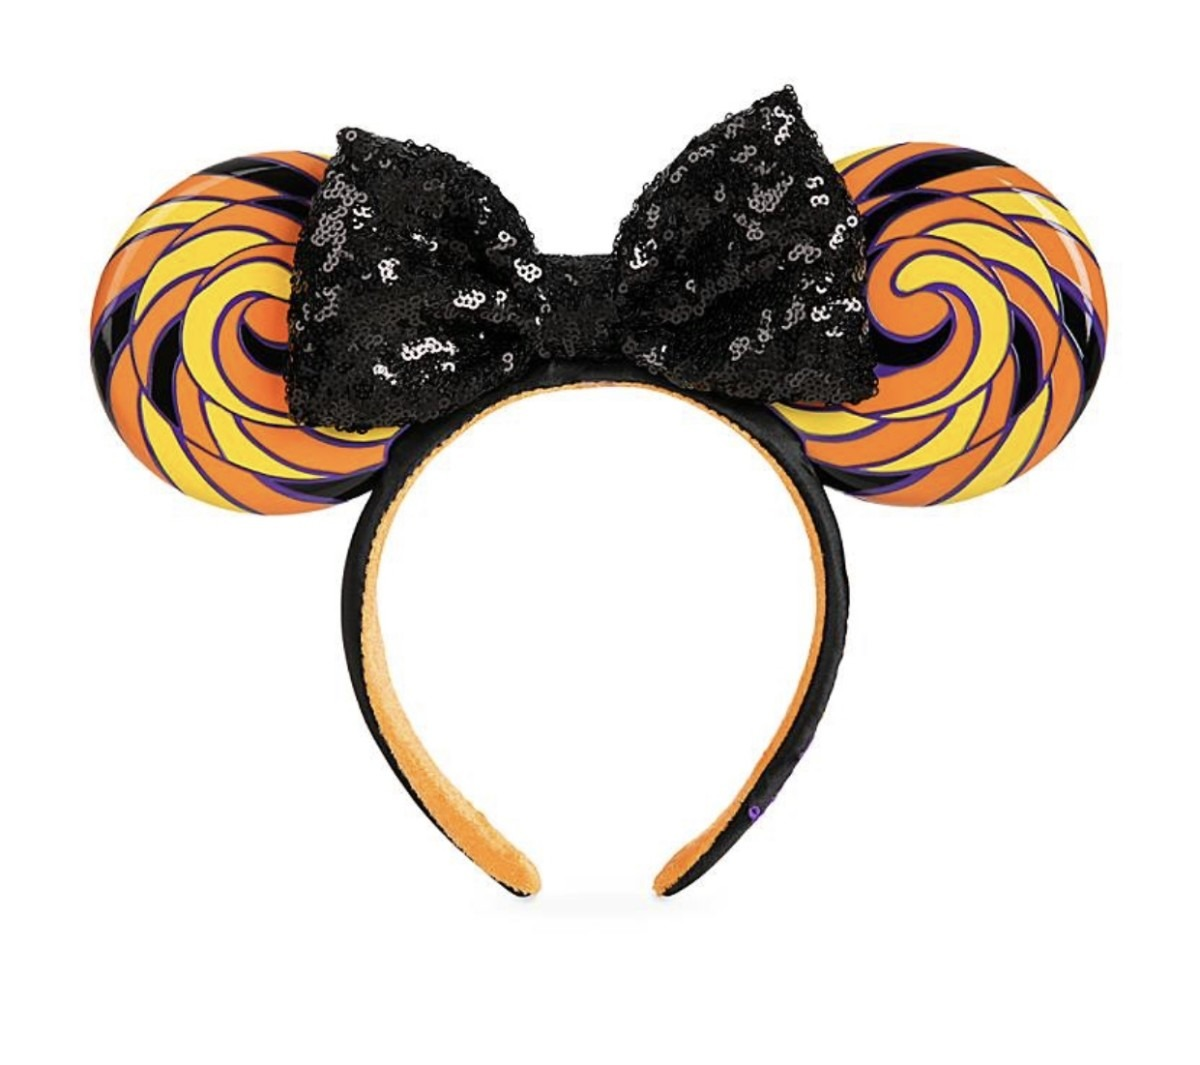 NEW Disney Parks Halloween Merch on shopDisney! 3